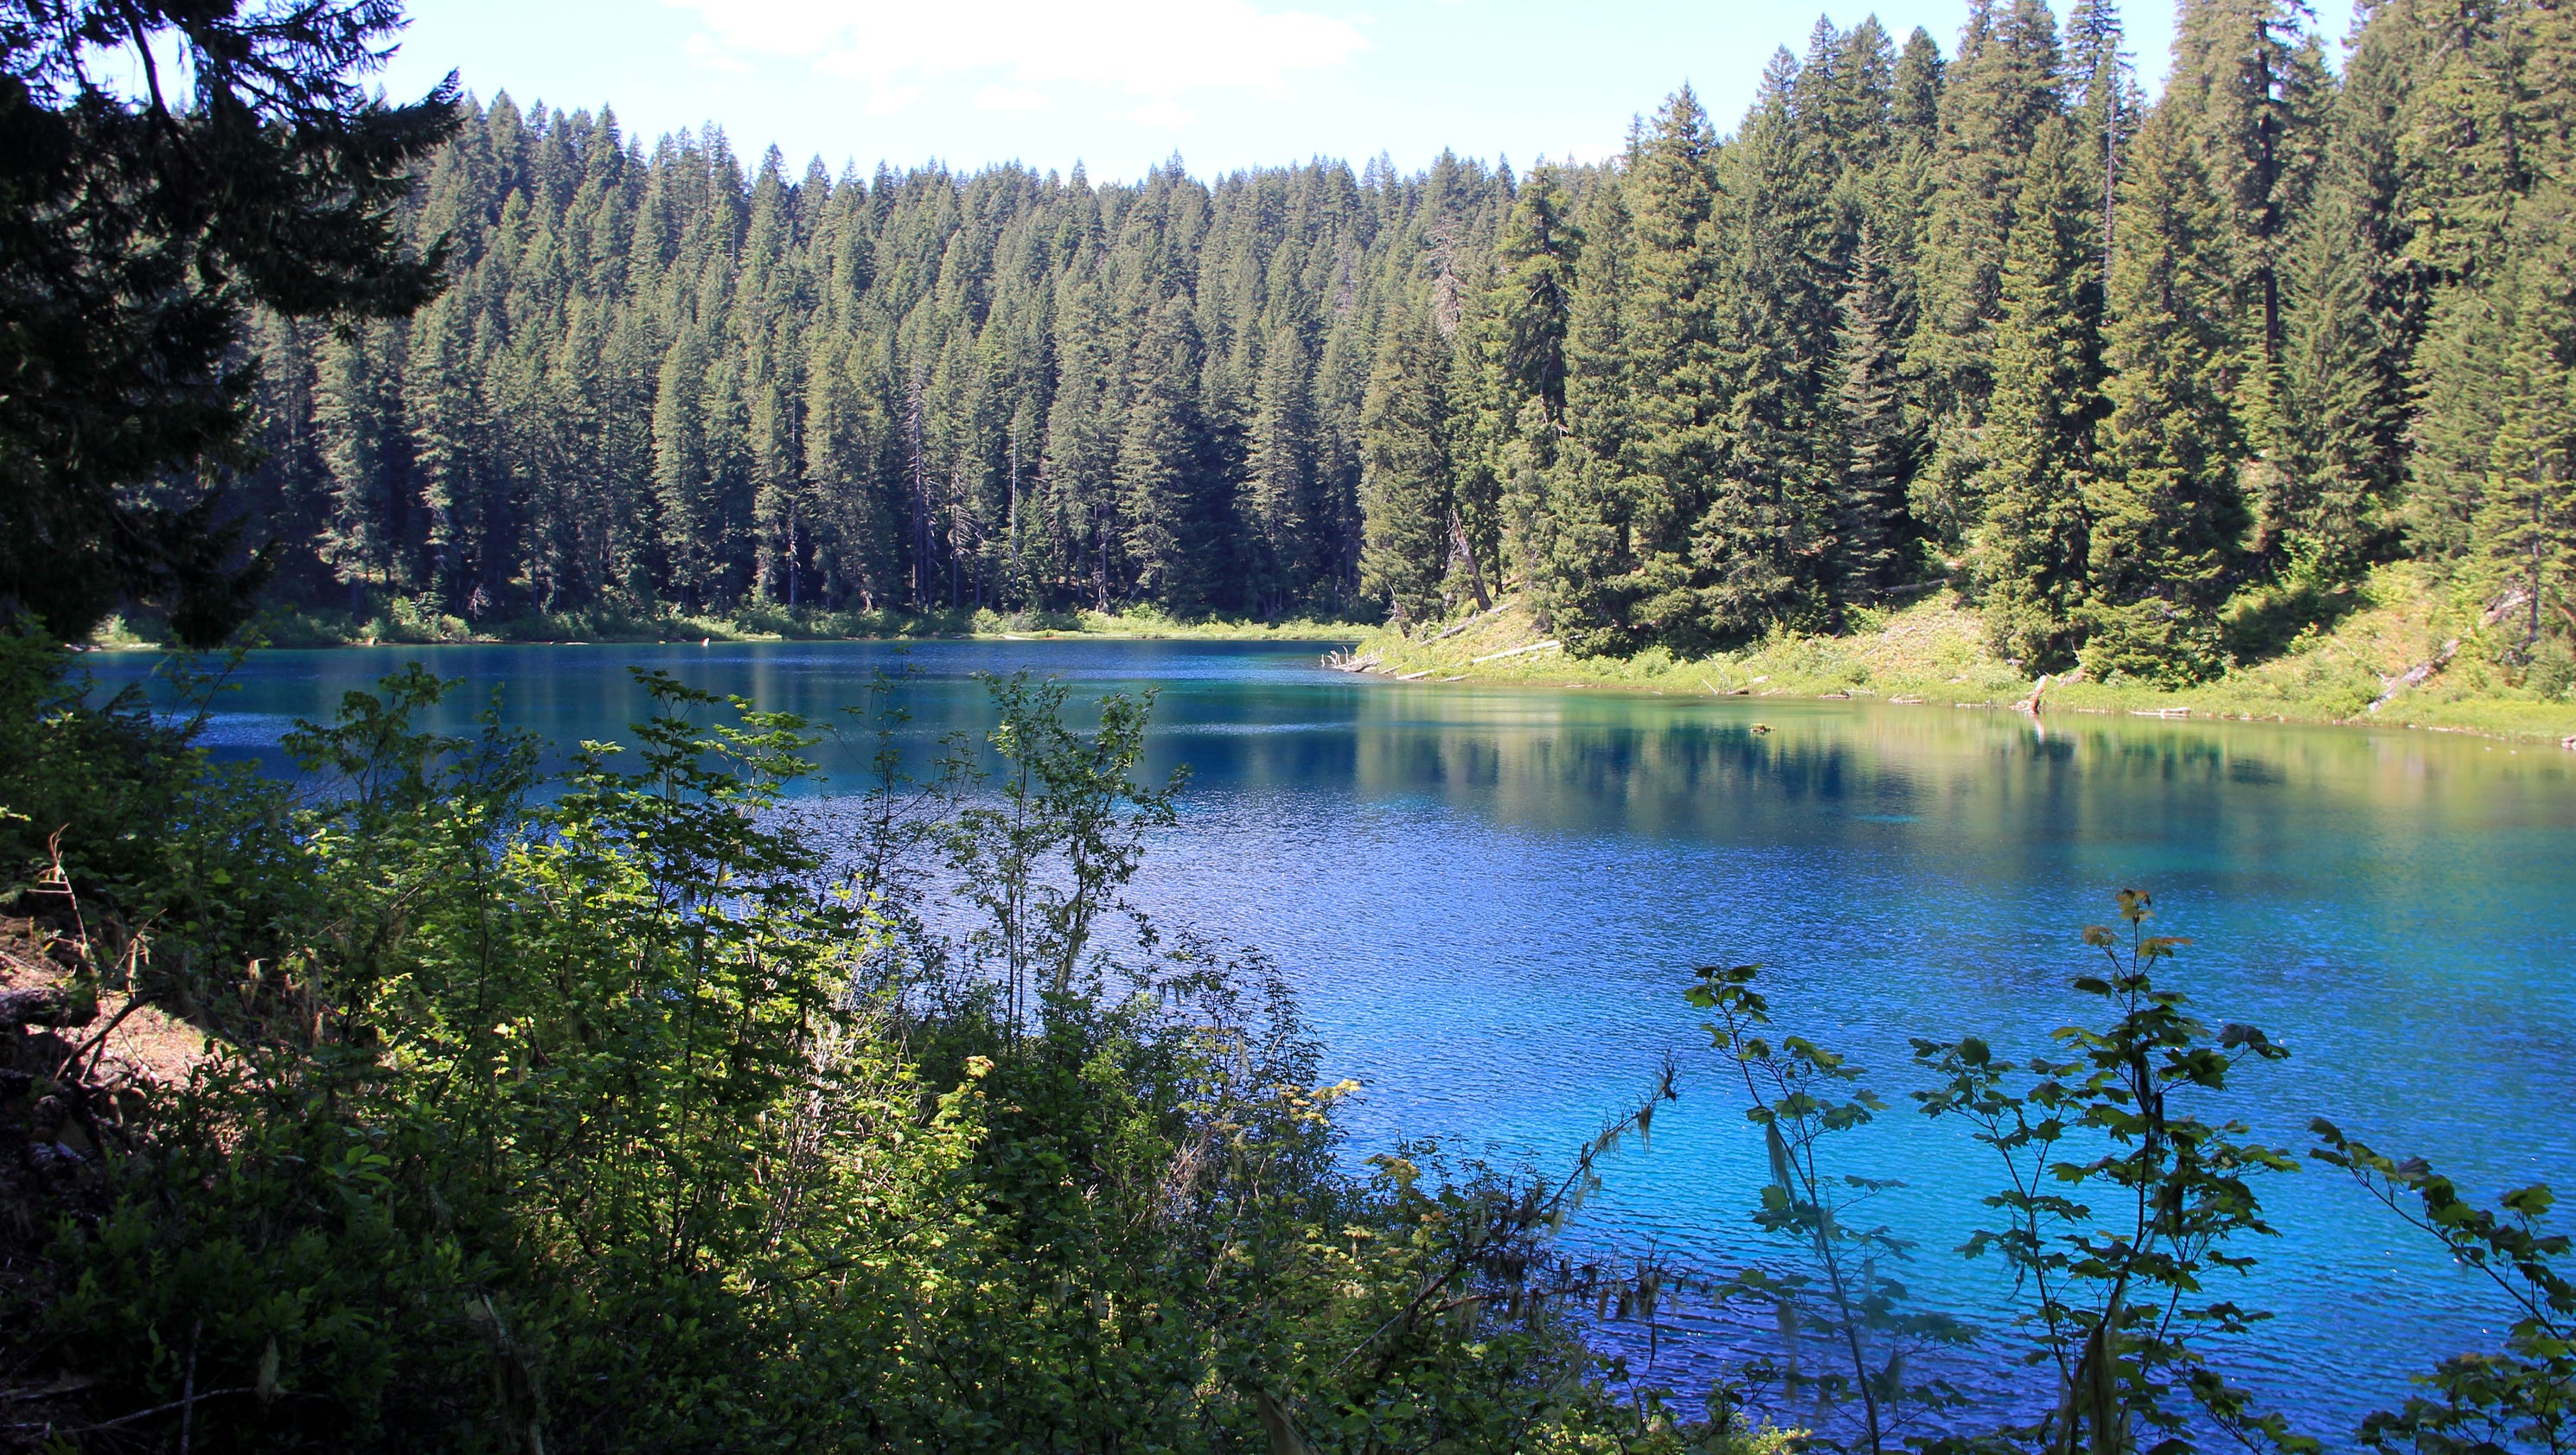 Head to Oregon's mountains lakes for excellent trout fishing